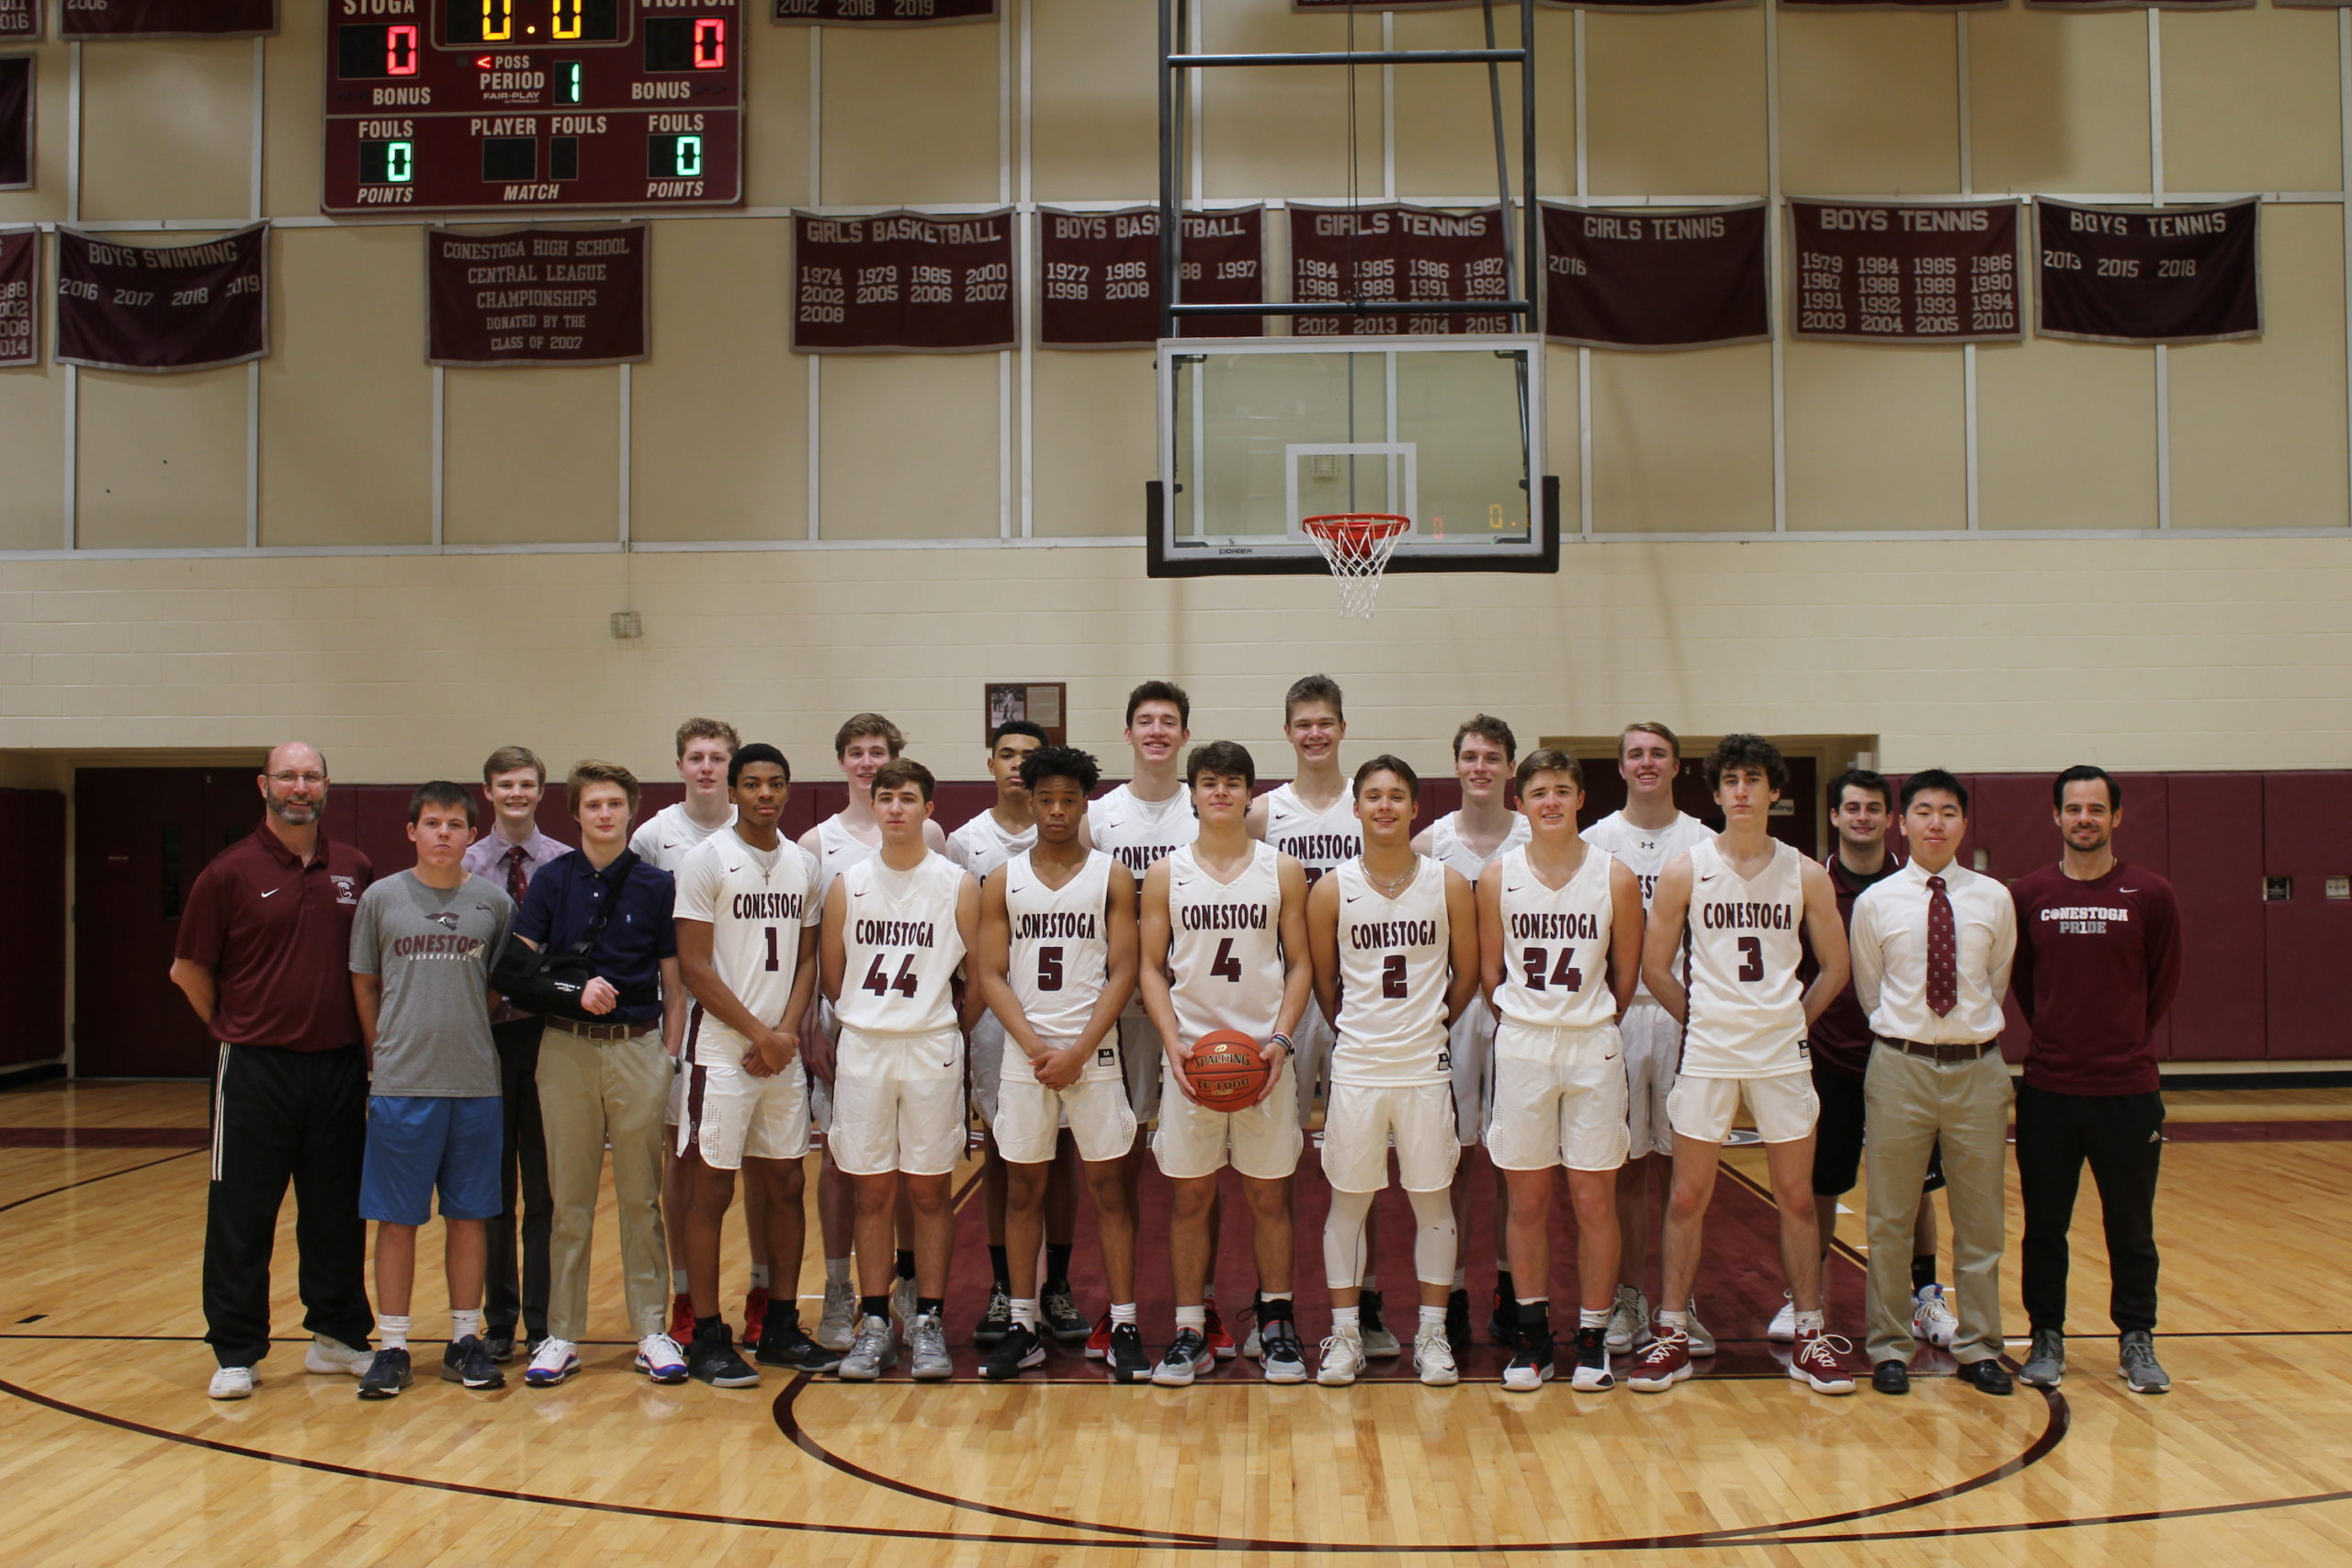 2019-2020 Varsity Basketball Team